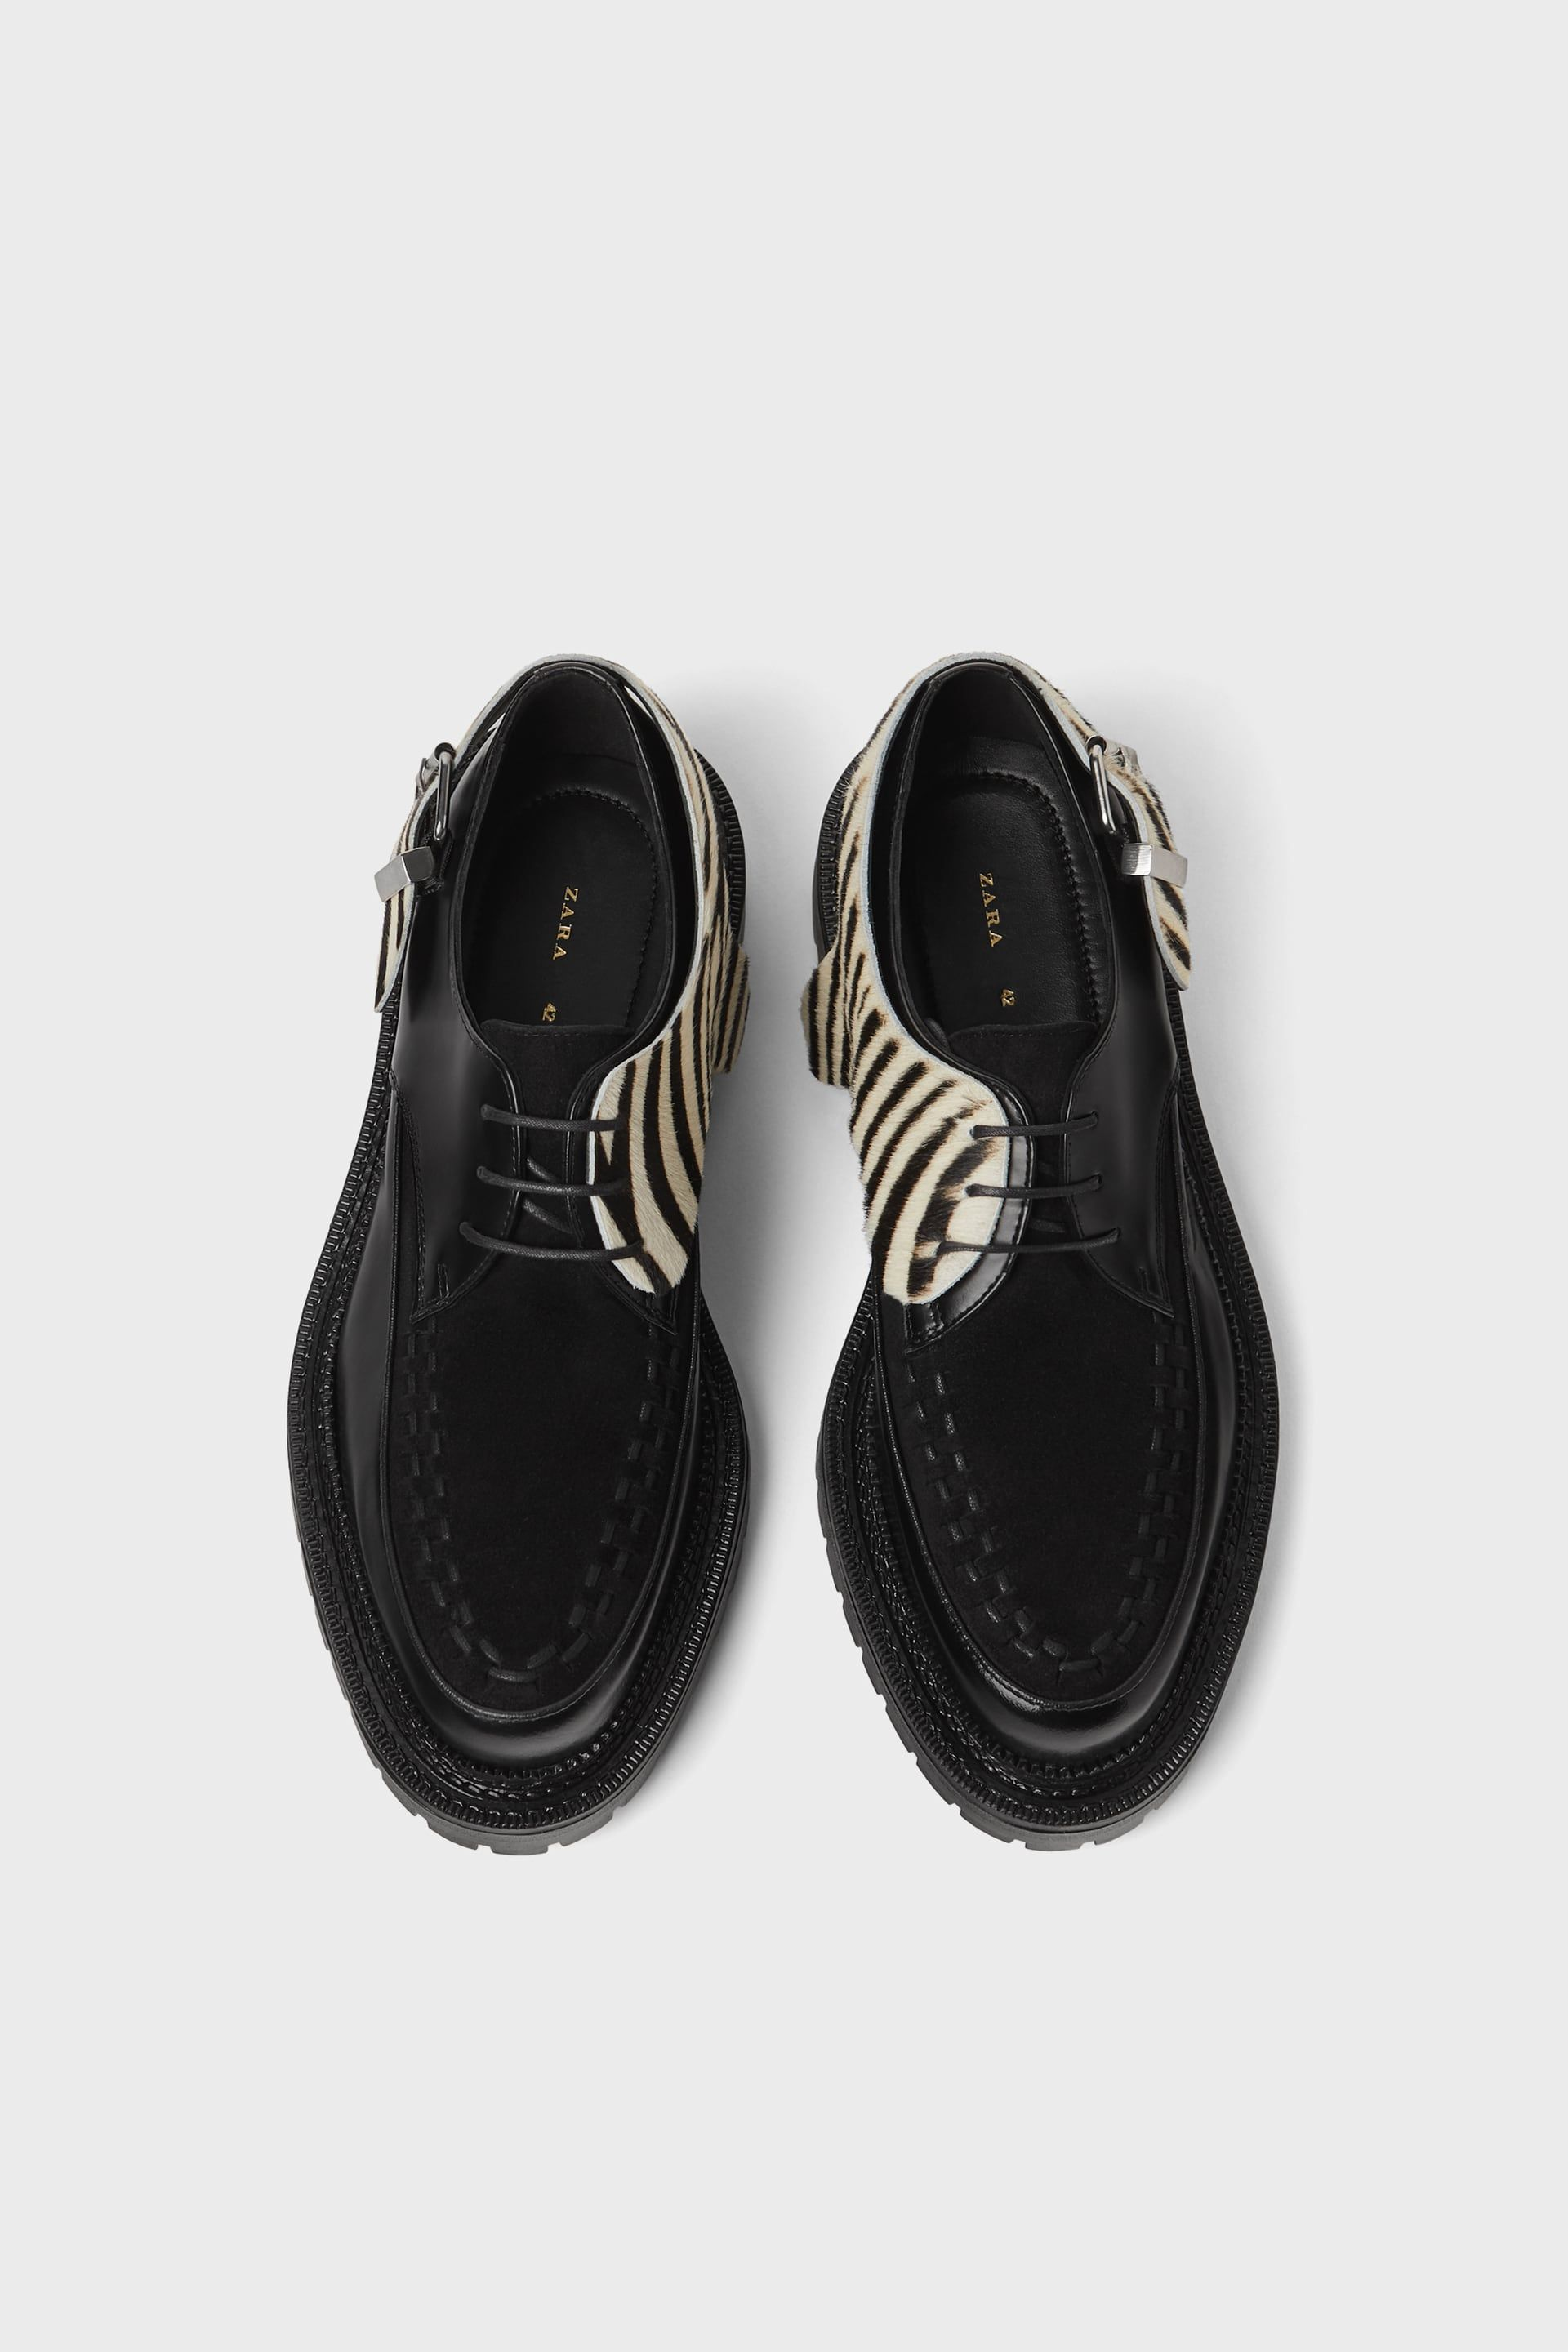 7525b0d58 ZARA BLACK LEATHER SHOES WITH ZEBRA PRINT DETAIL Mens Shoes Online